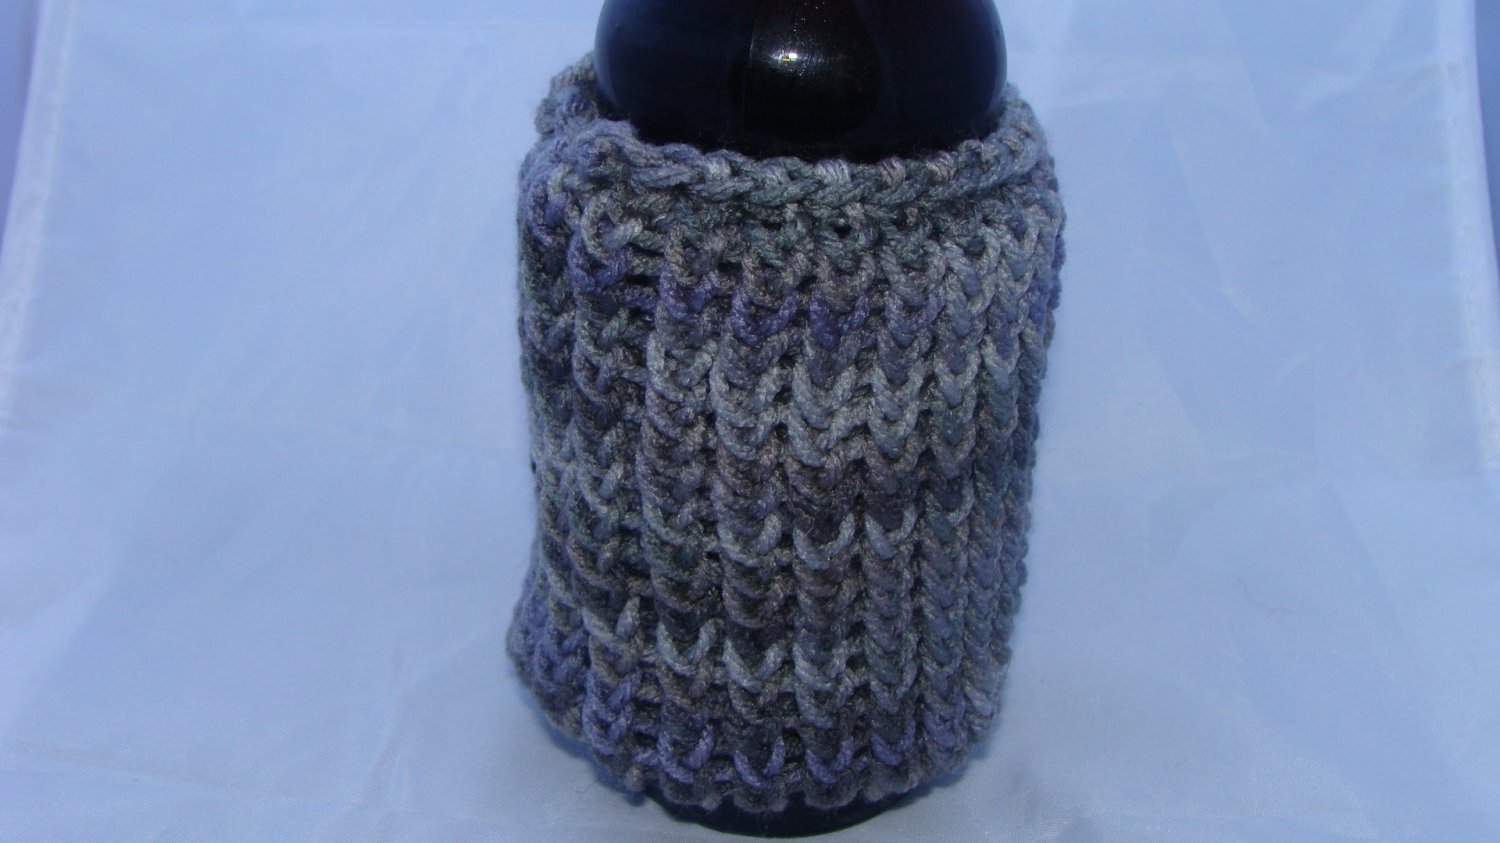 Shades of grey bottle/can koozie